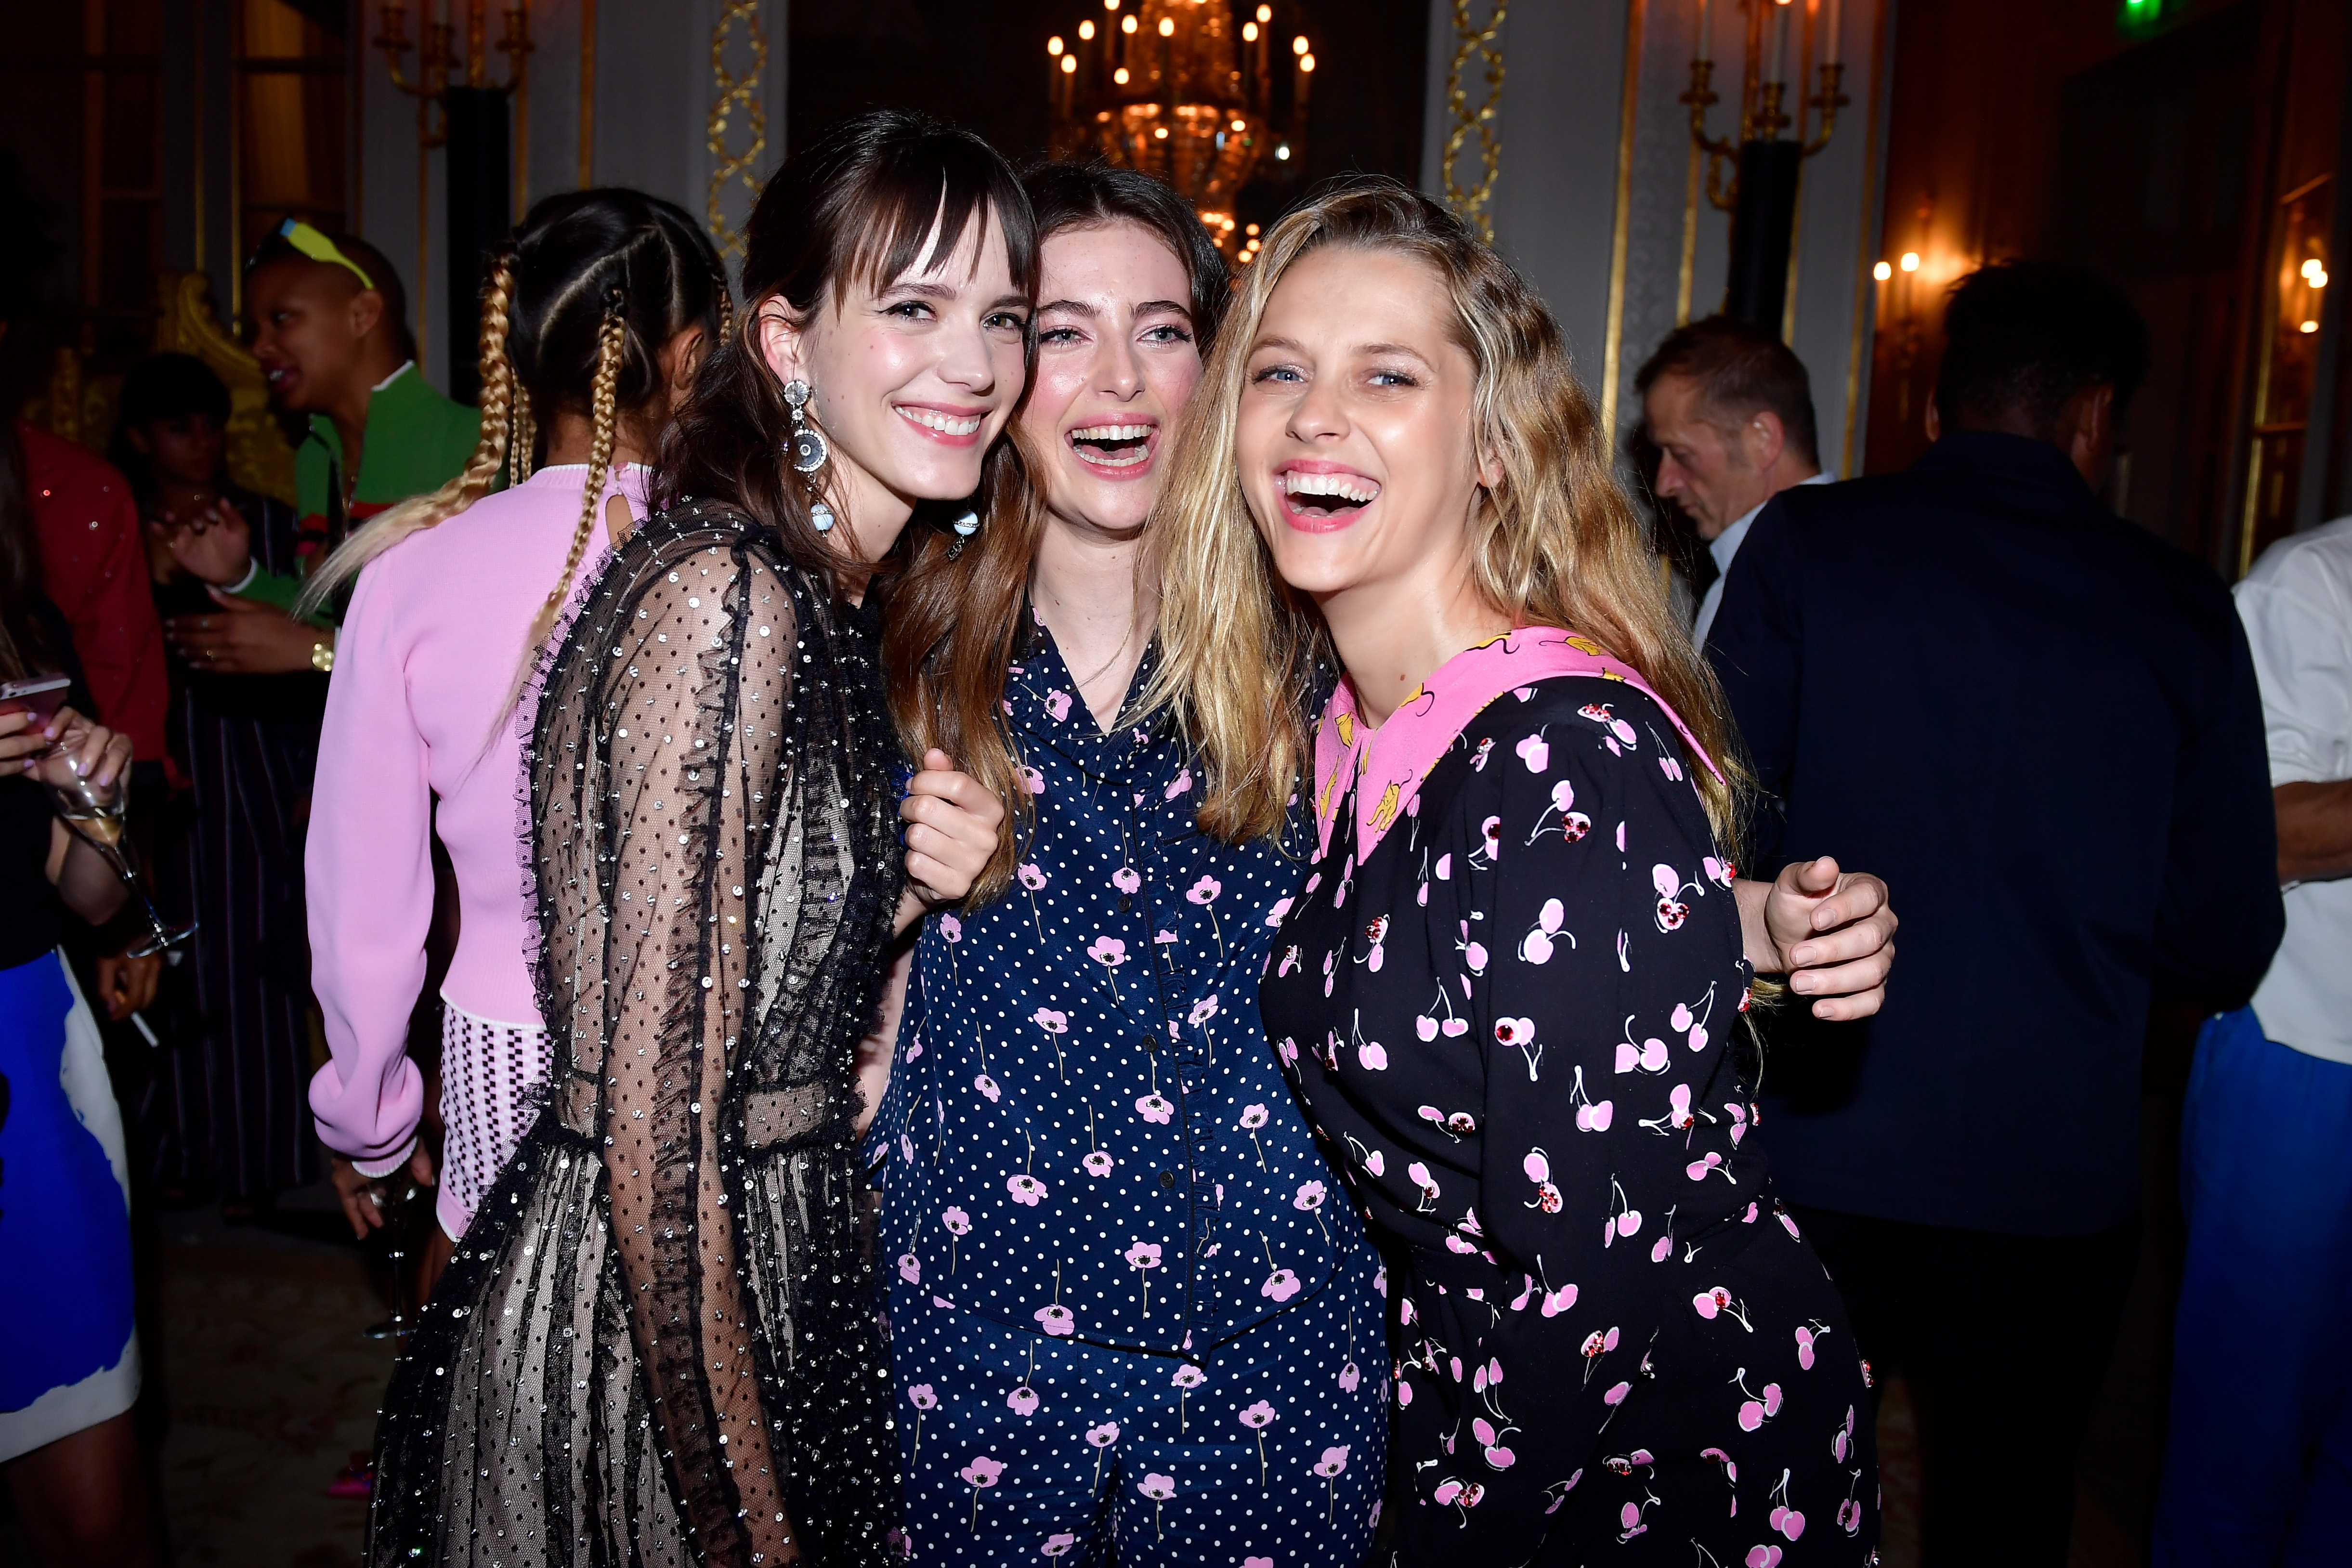 PARIS, FRANCE - JULY 02:  (L-R) Stacy Martin, Millie Brady and Teresa Palmer attend Miu Miu Cruise Collection cocktail & party as part of Haute Couture Paris Fashion Week on July 2, 2017 in Paris, France.  (Photo by Victor Boyko/Getty Images for Miu Miu) *** Local Caption *** Stacy Martin, Millie Brady;Teresa Palmer